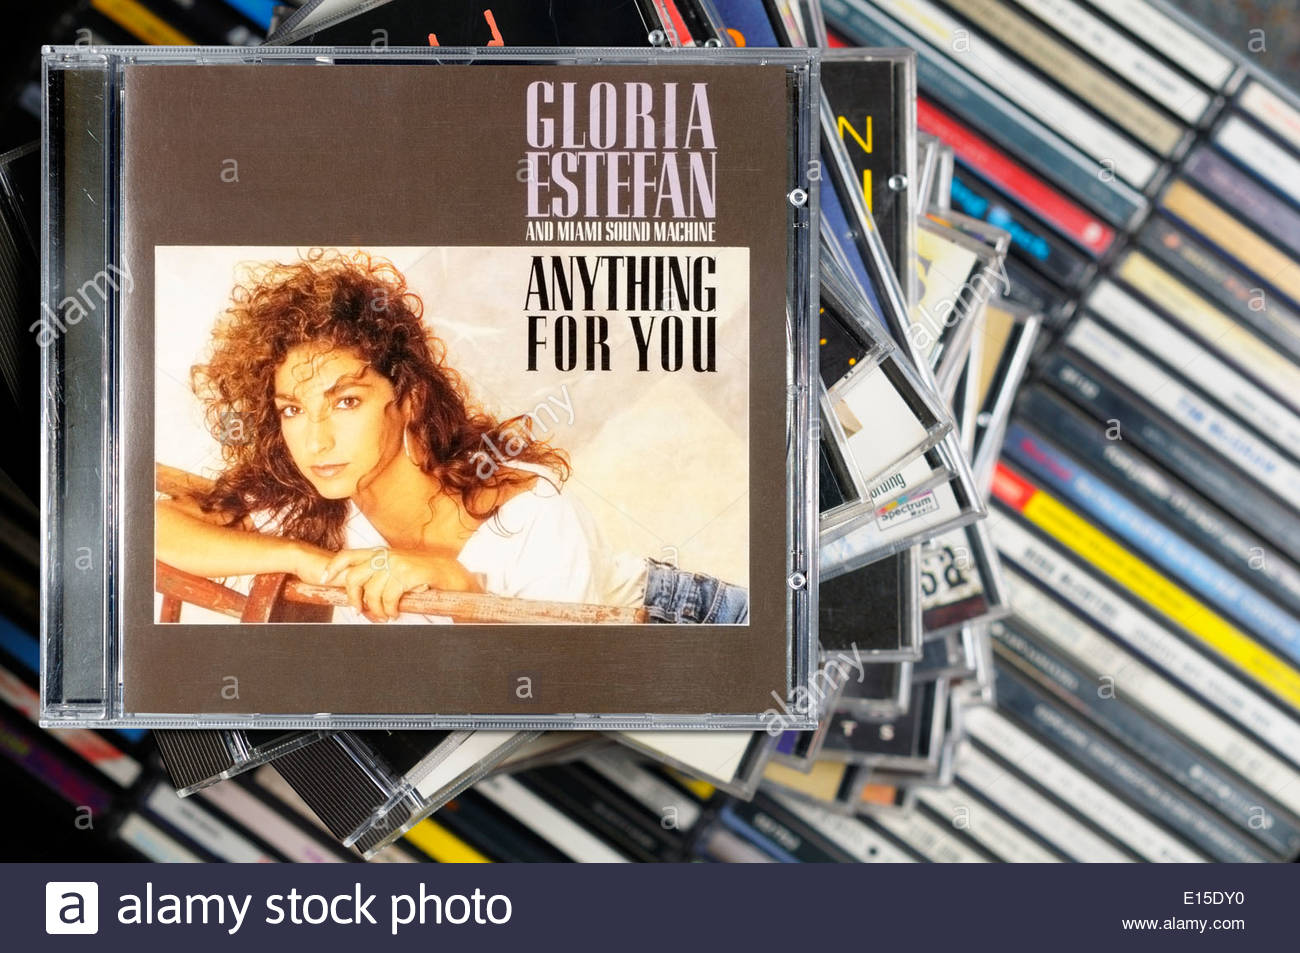 miami sound machine anything for you